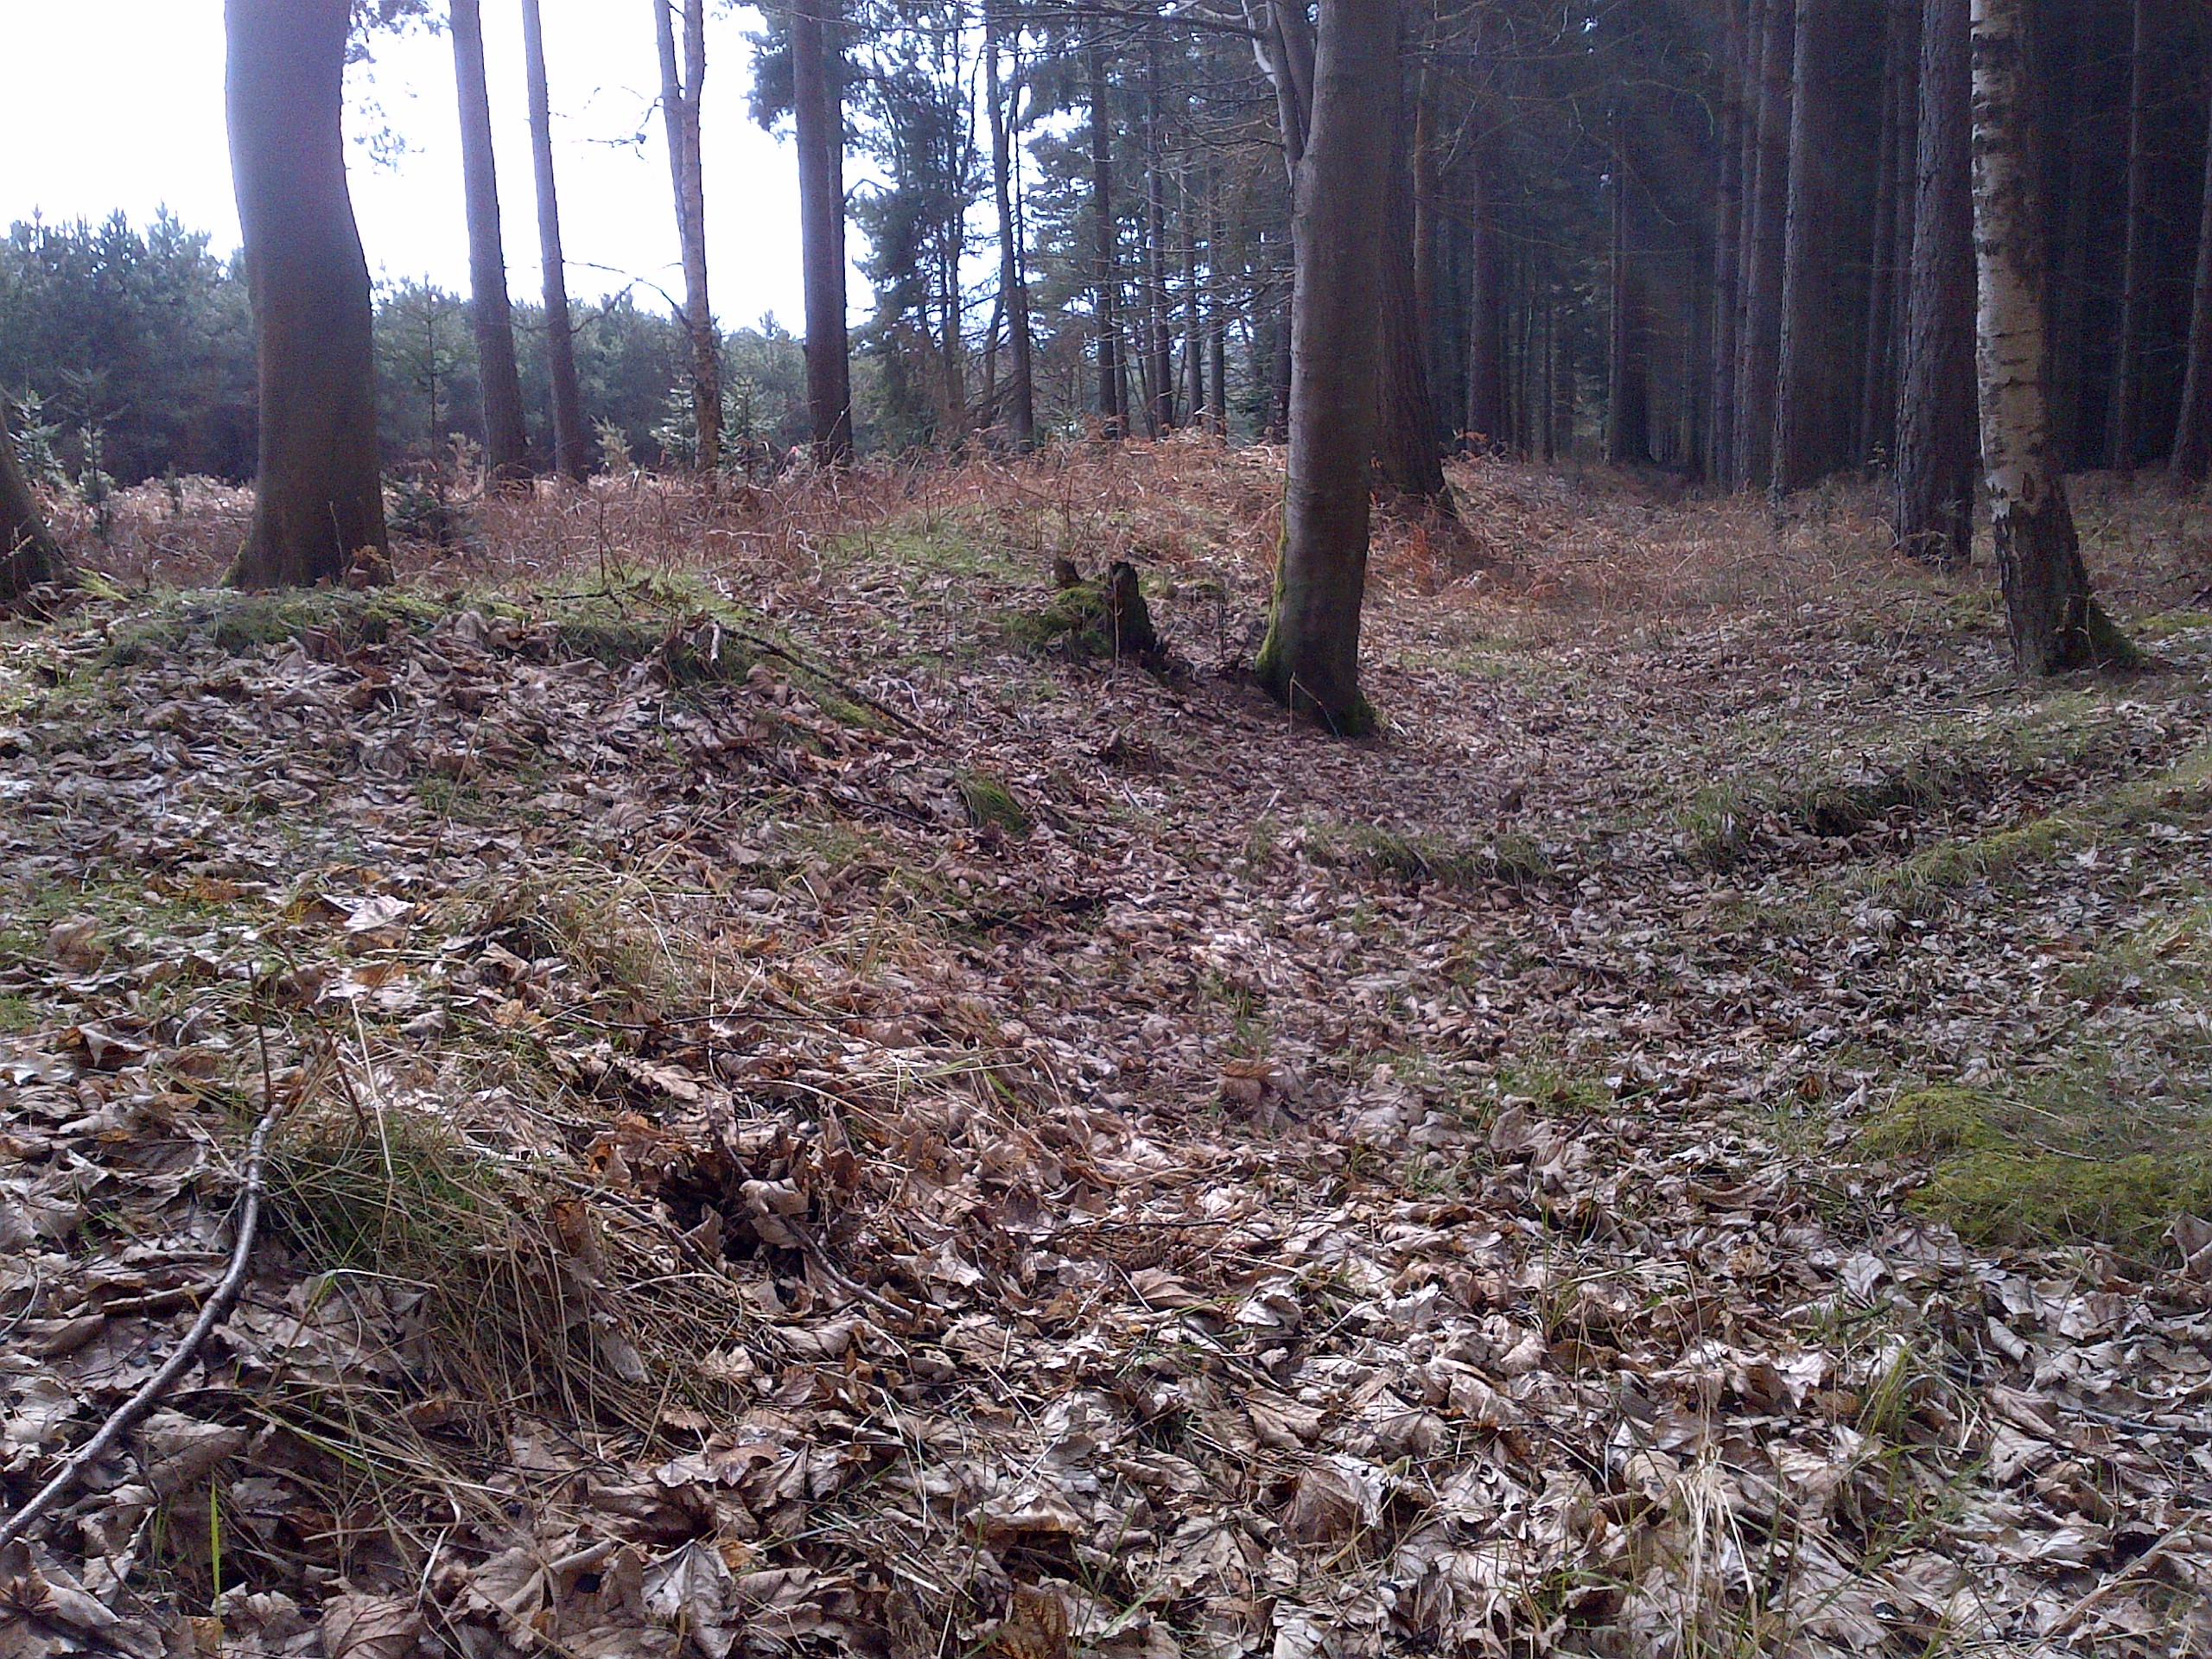 Downham Warren - Section 11